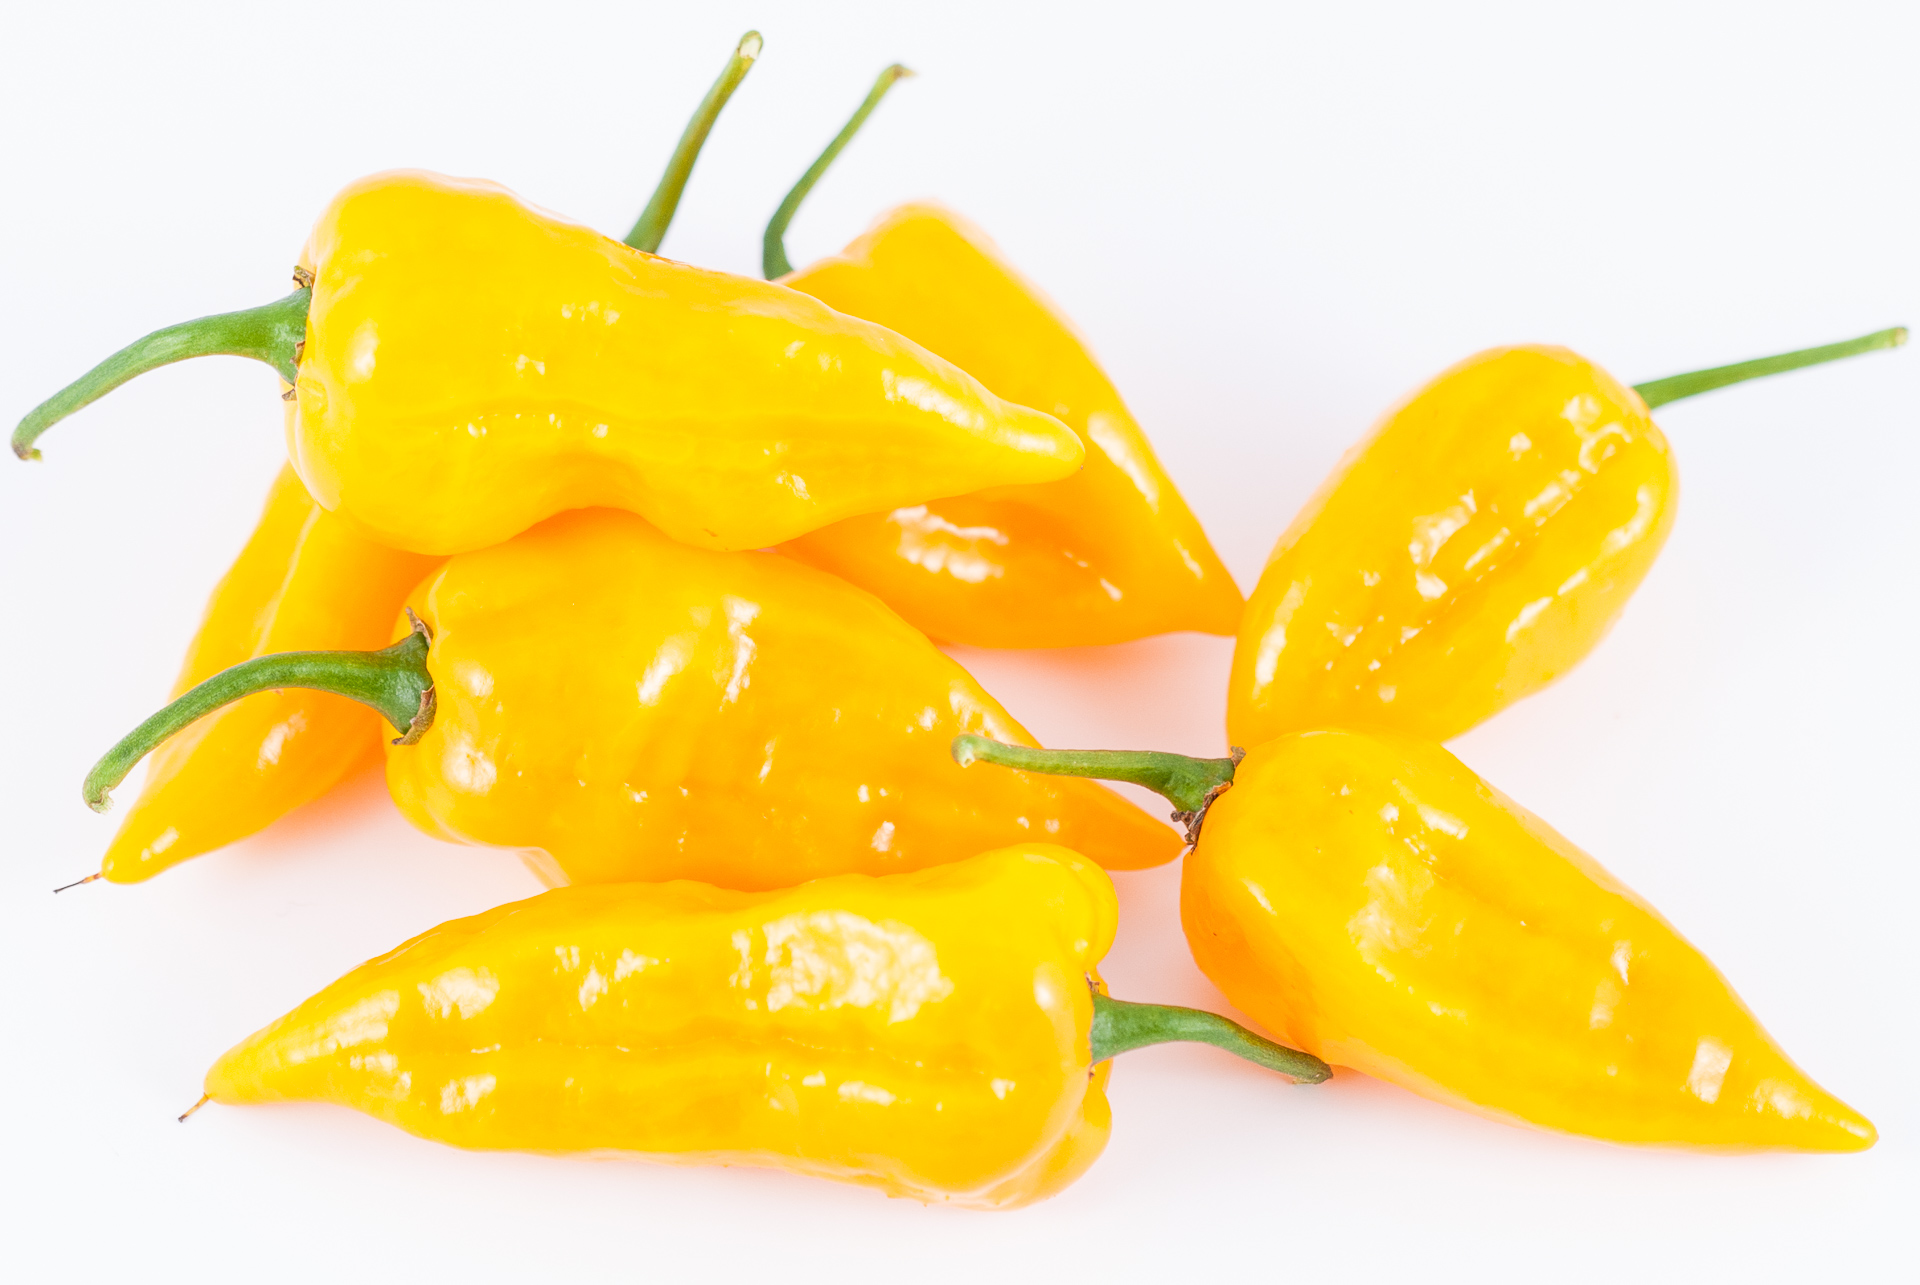 Pimento - Capsicum sp. - Chilisorte